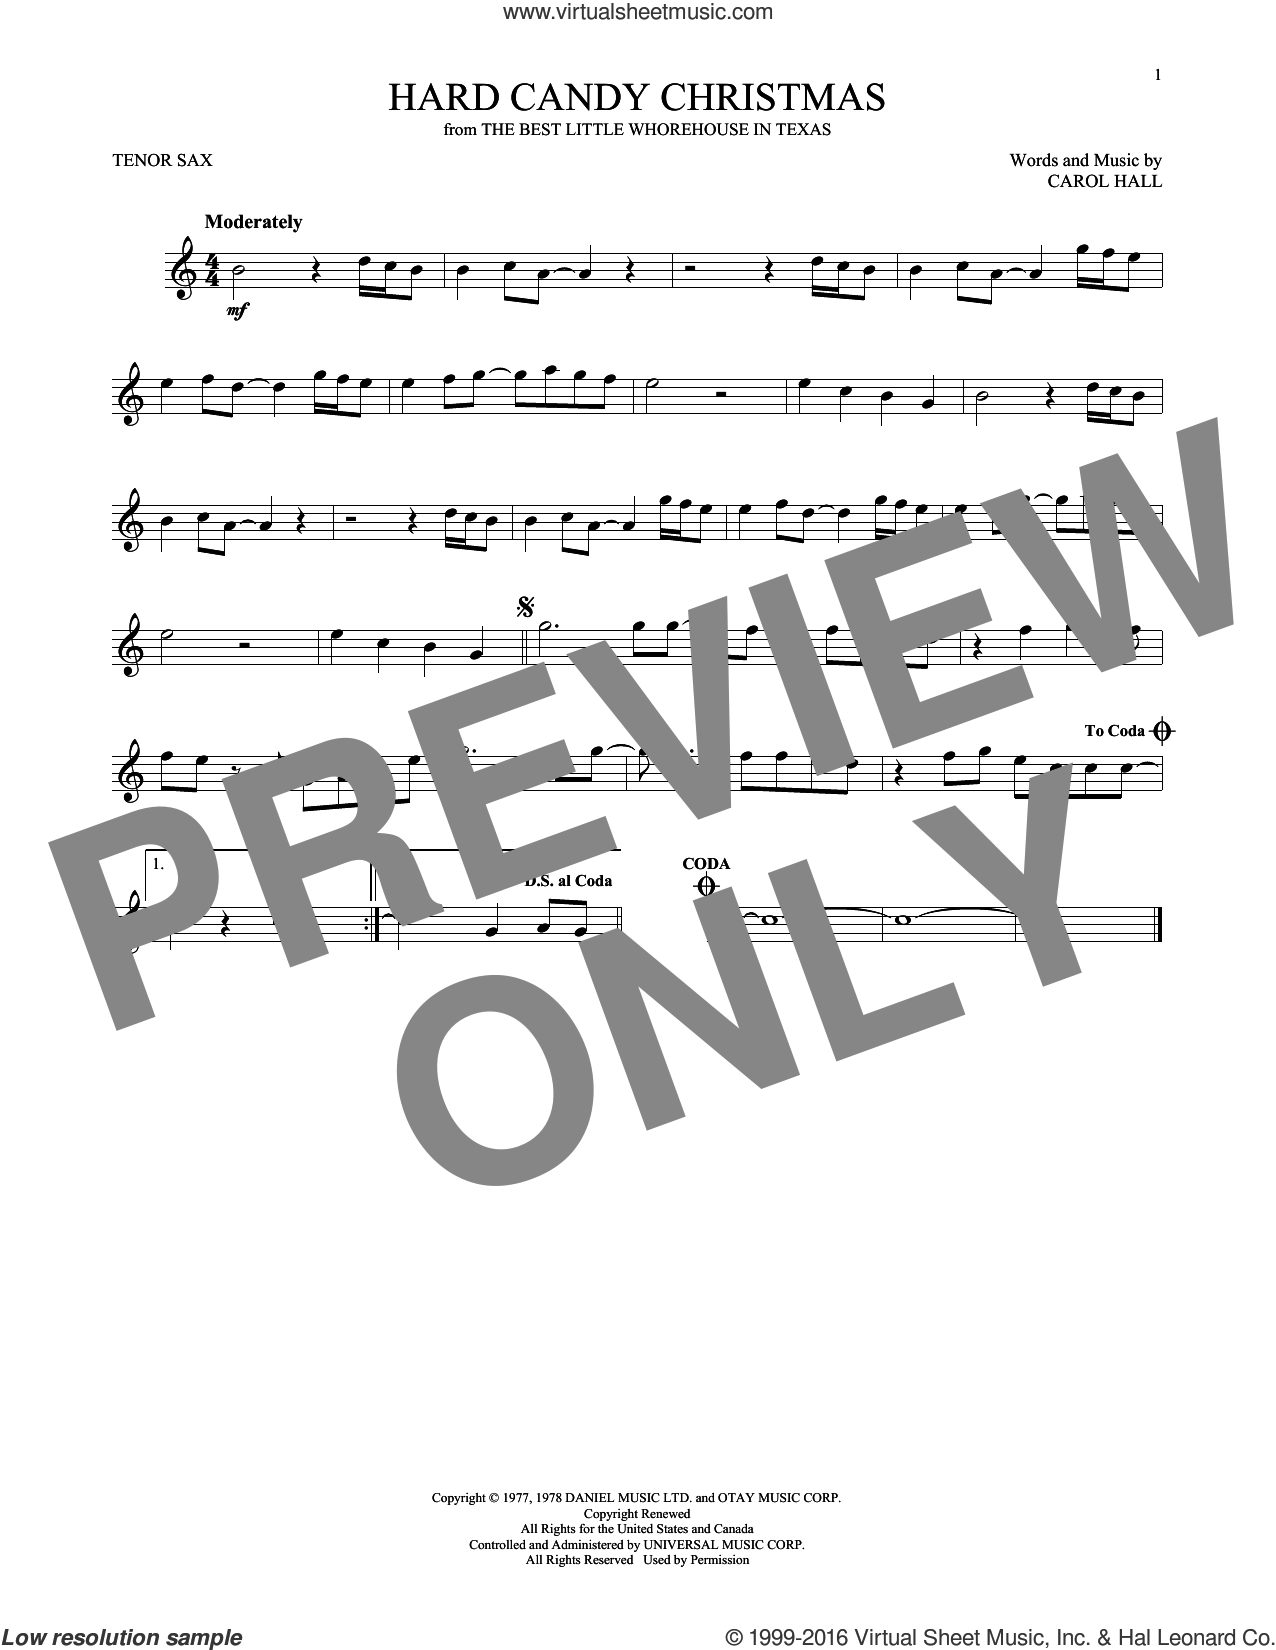 Hard Candy Christmas sheet music for tenor saxophone solo by Dolly Parton and Carol Hall, intermediate skill level